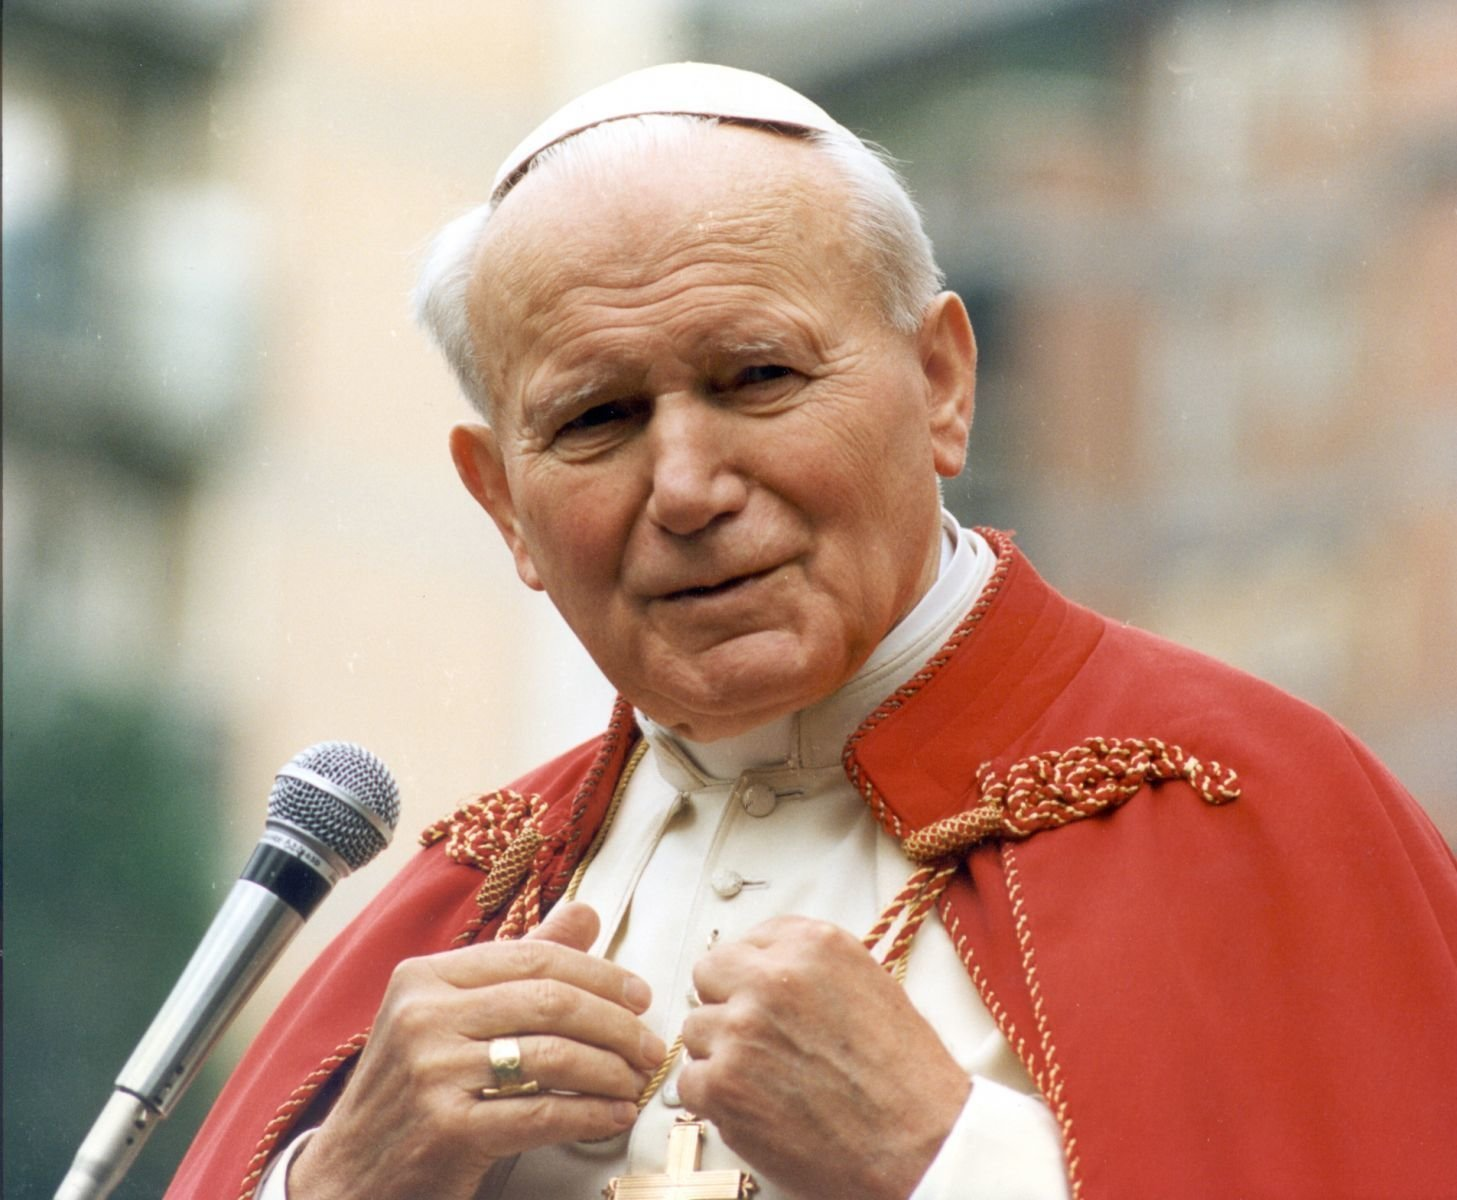 pope-johnpaul